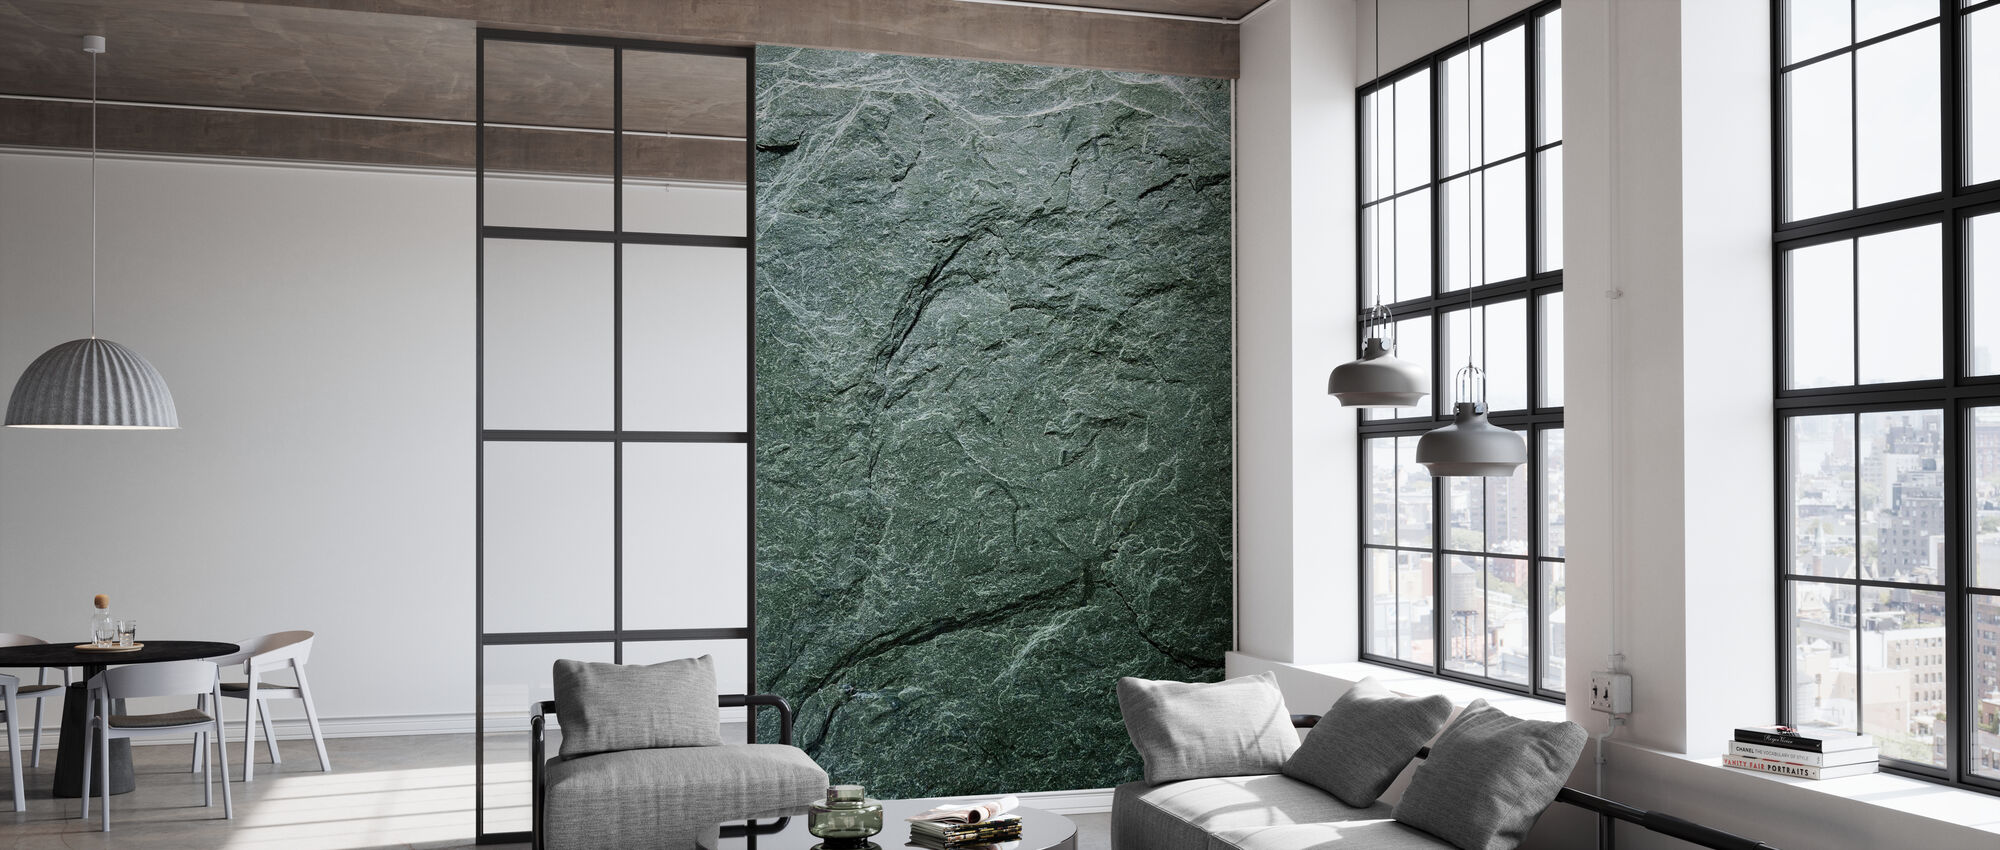 Greengray Slate - Wallpaper - Office